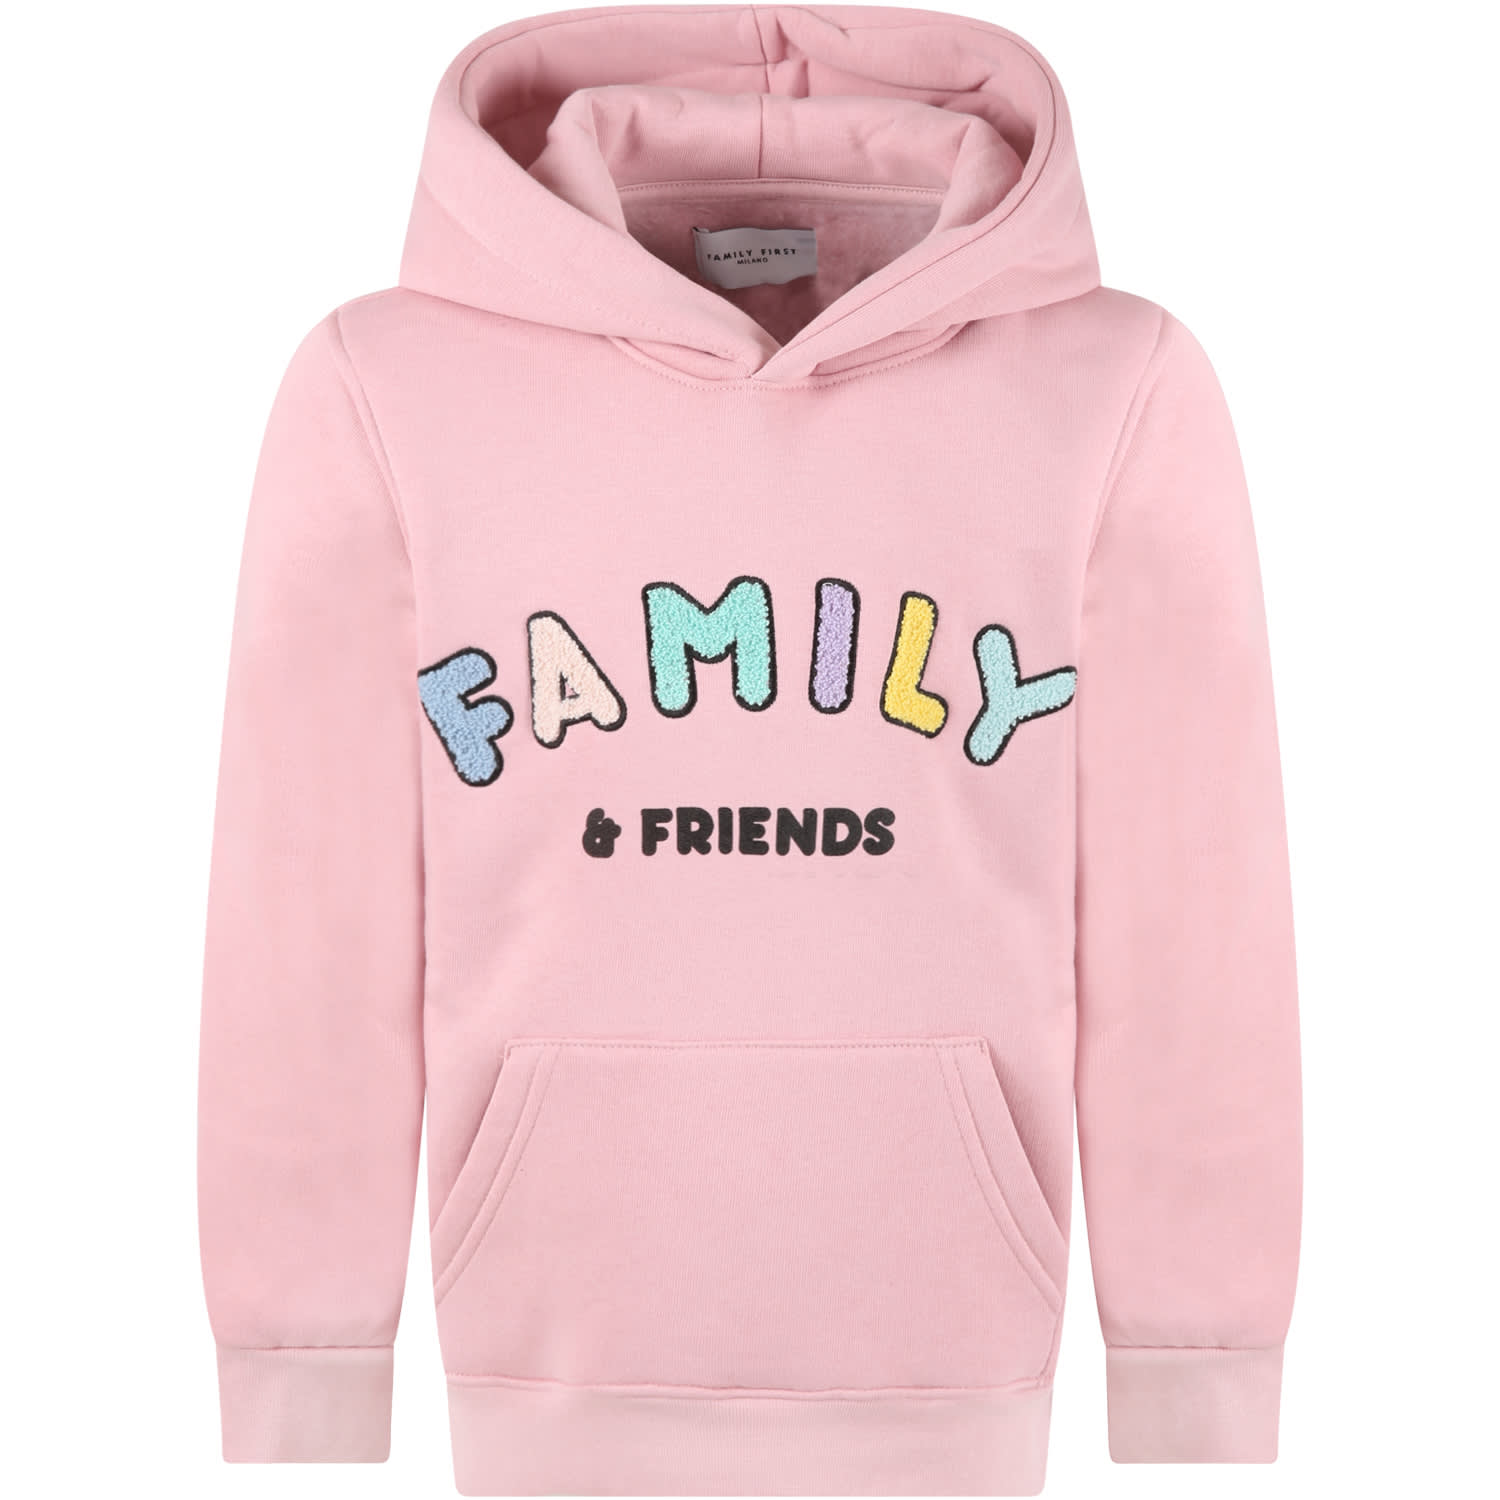 Pink Sweatshirt For Girl With Colorful Logo